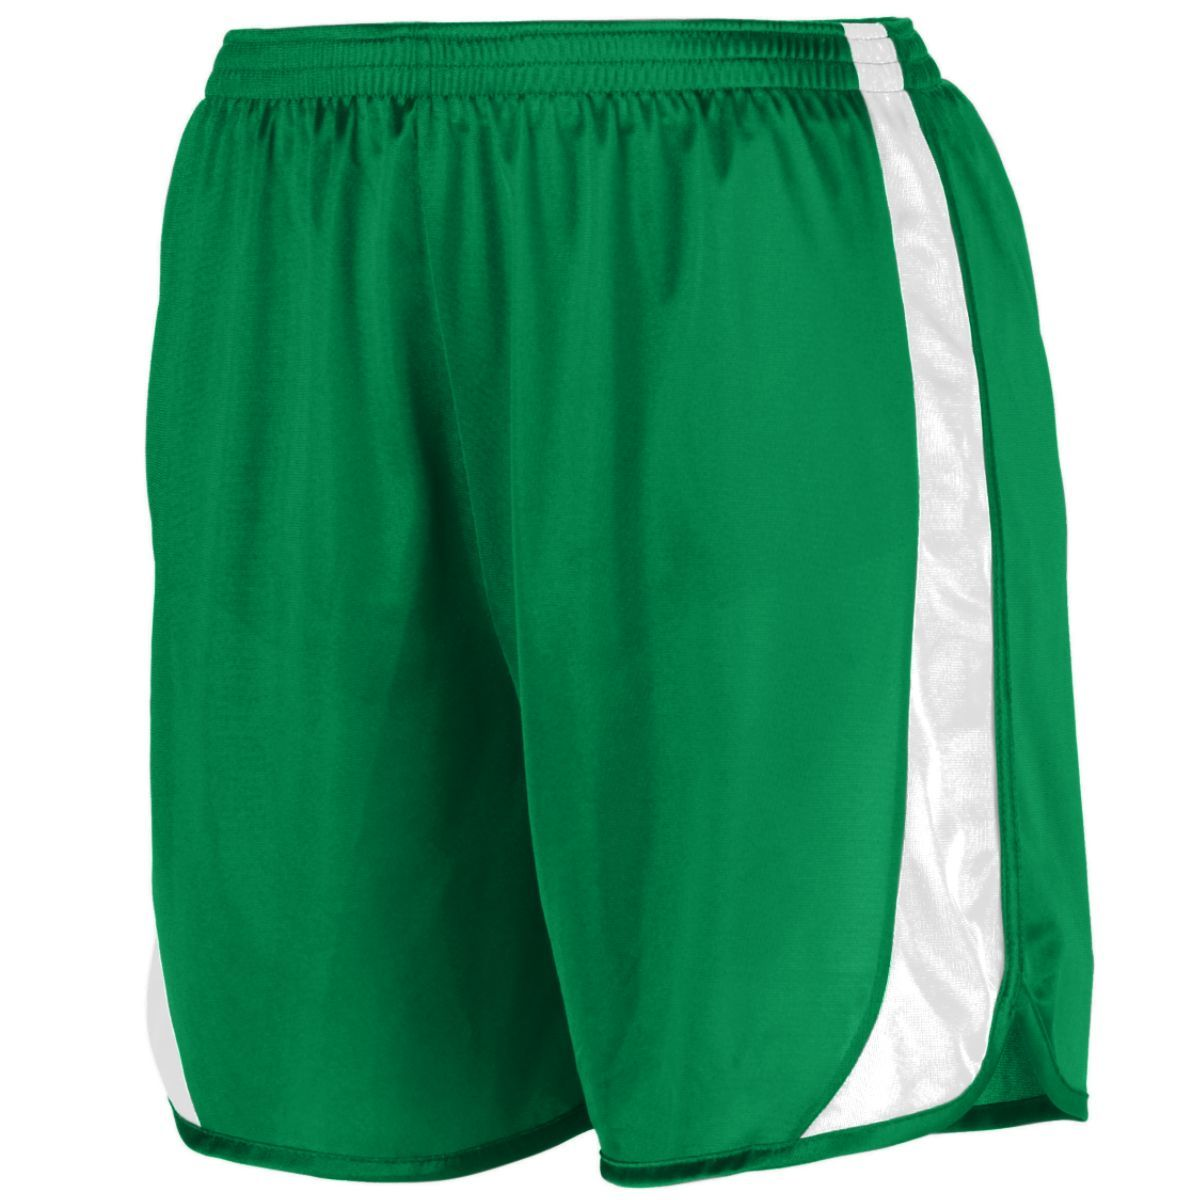 Youth Wicking Track Shorts With Side Insert - KELLY/WHITE